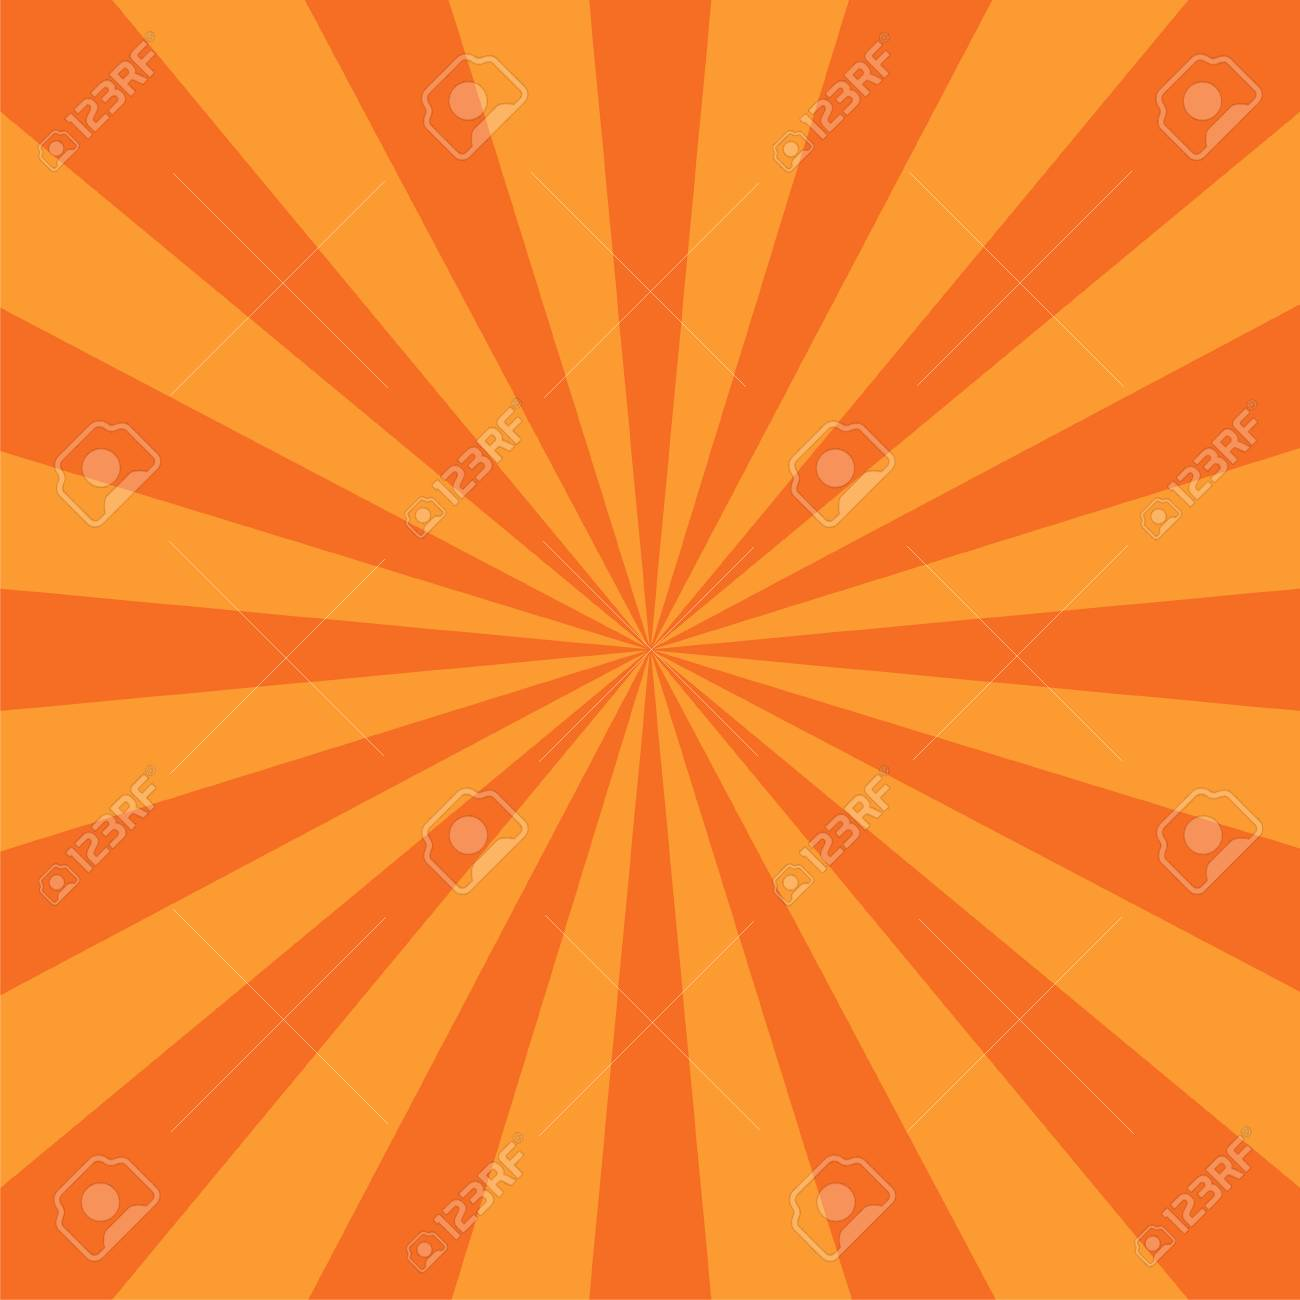 Rays Background Illustration For Your Bright Beams Design Sun